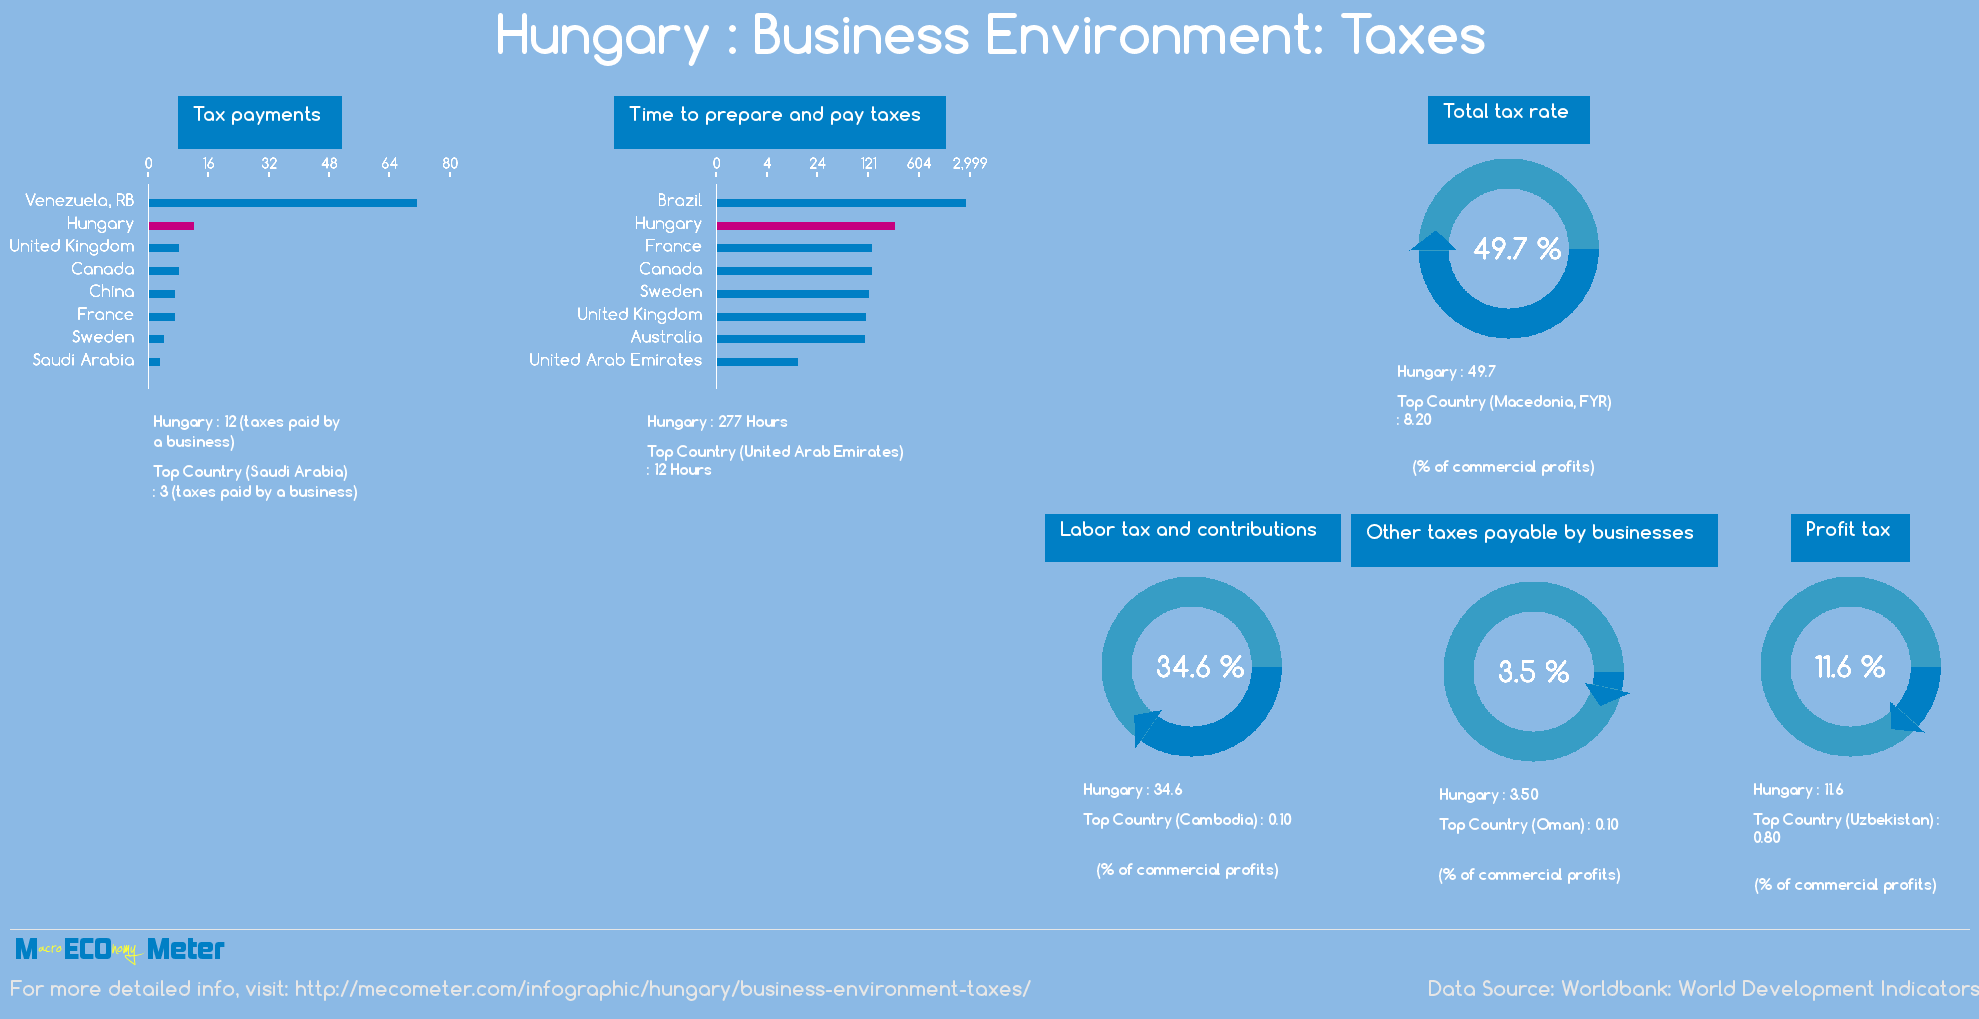 Hungary : Business Environment: Taxes